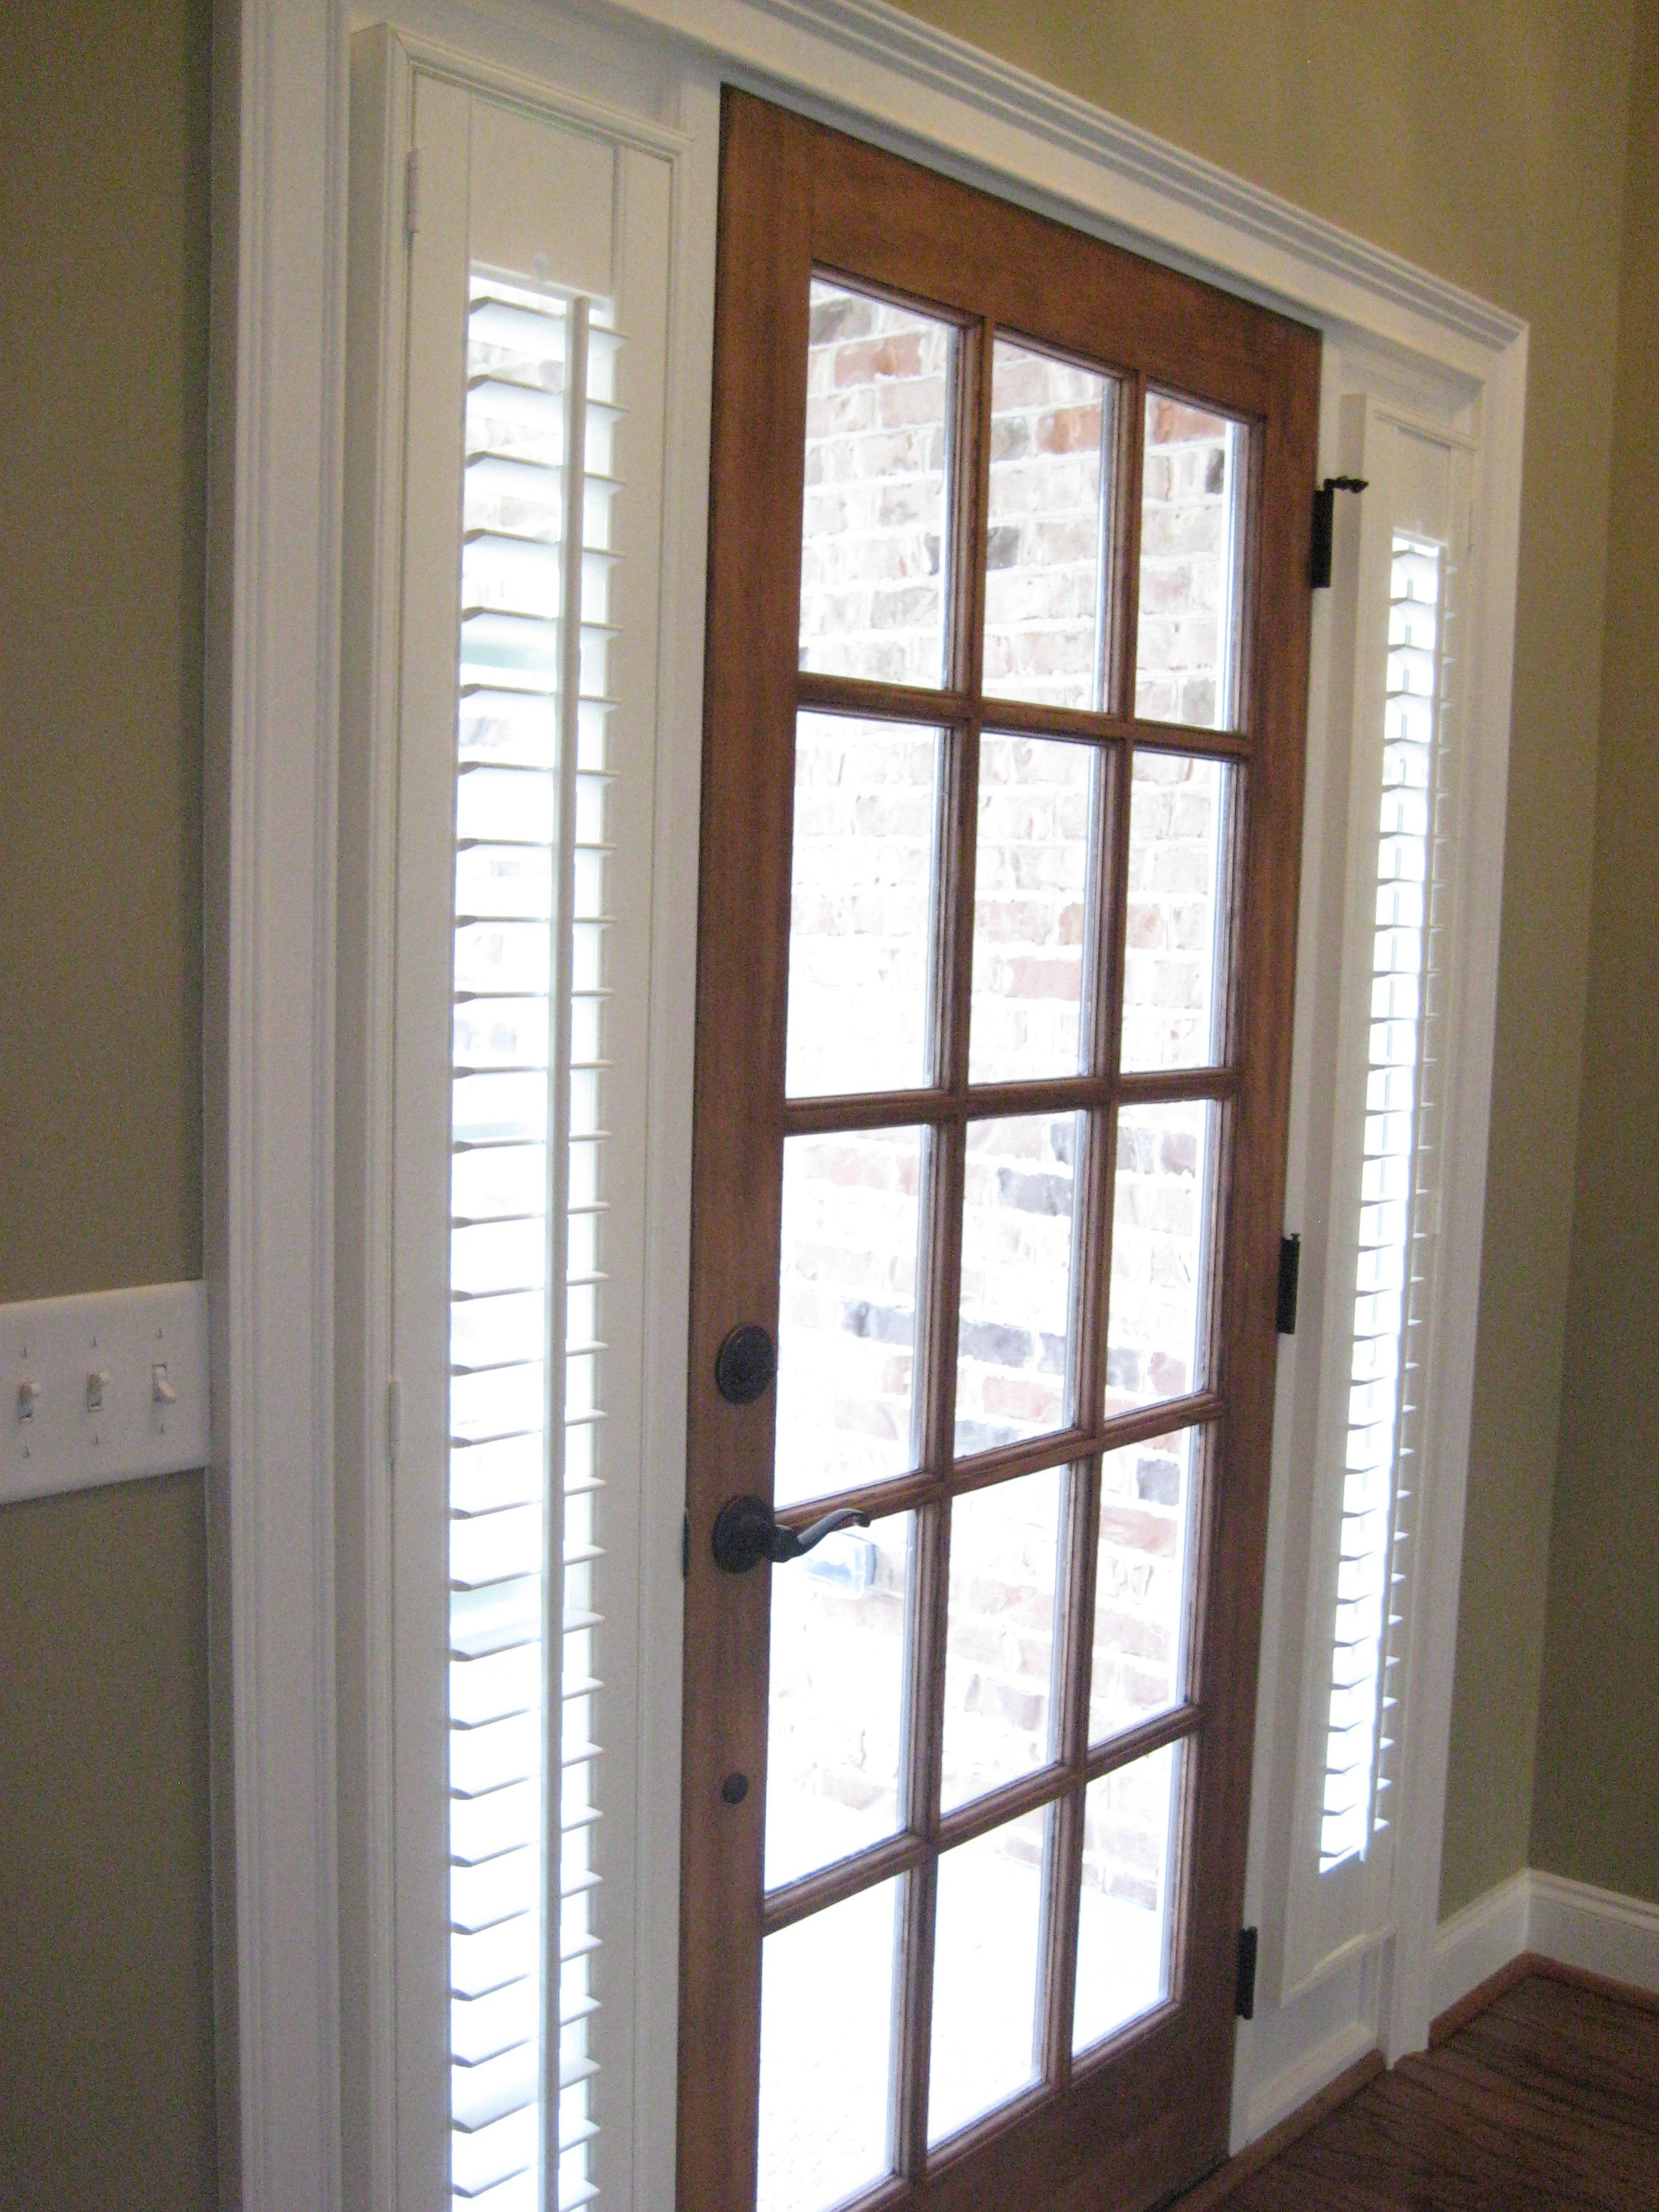 Sidelight blinds idea plantation shutters can be custom made for